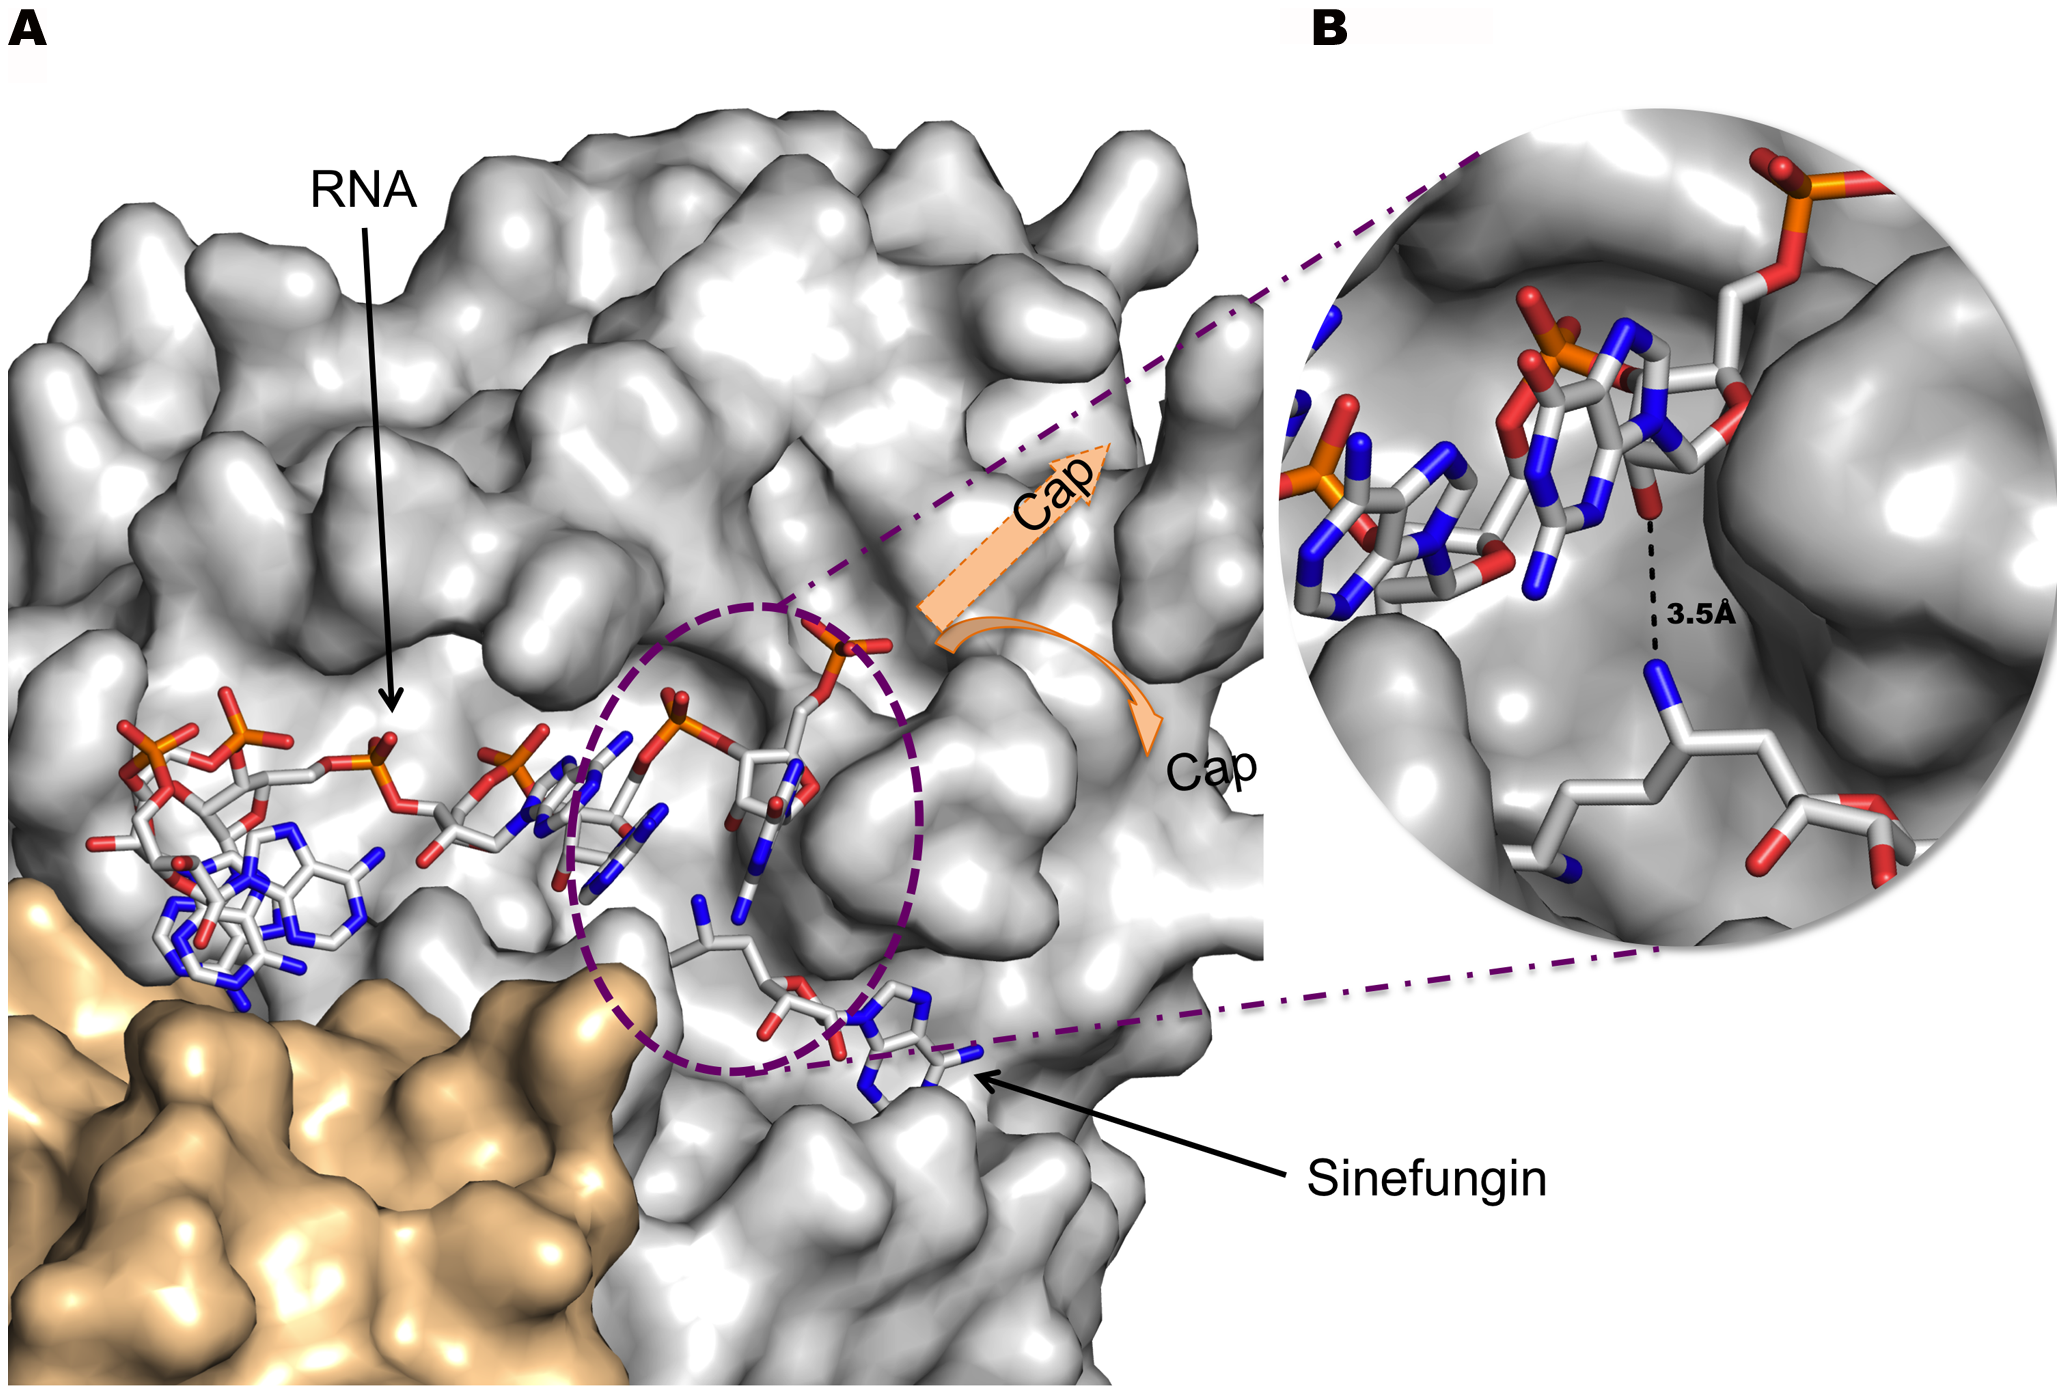 Stick model of RNA bound to the nsp16 RNA binding groove and Sinefungin in the methyltransferase active site.